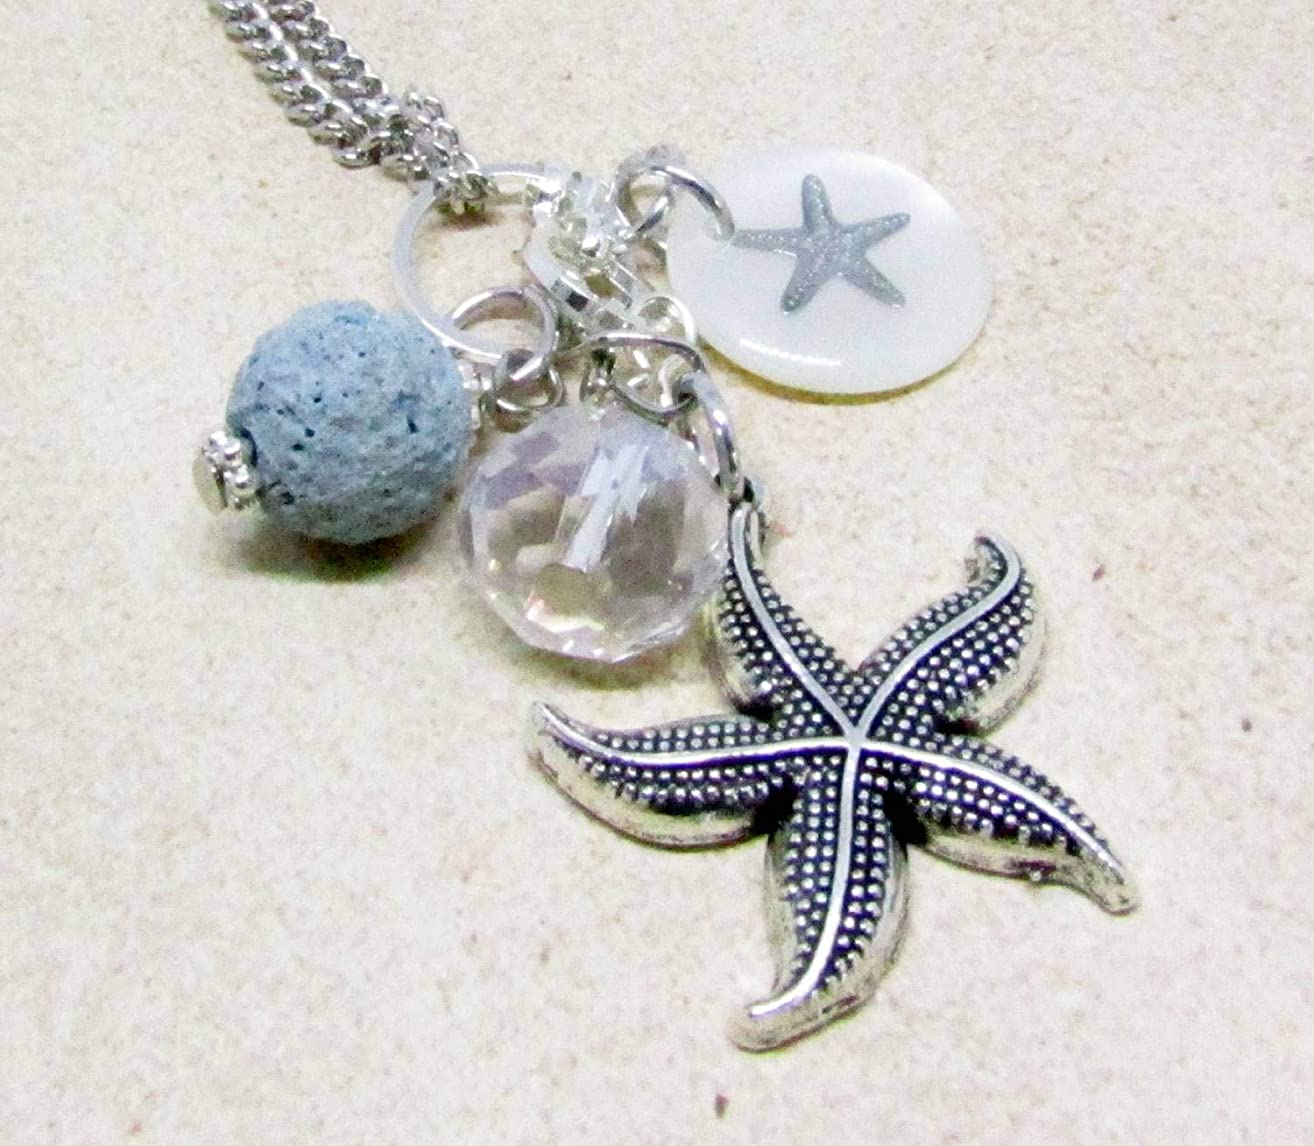 Starfish Rear View Mirror Car Charm, Essential Oil Diffuser, Crystal Car Diffuser, Car Accessory, Aromatherapy Rearview Mirror Charm